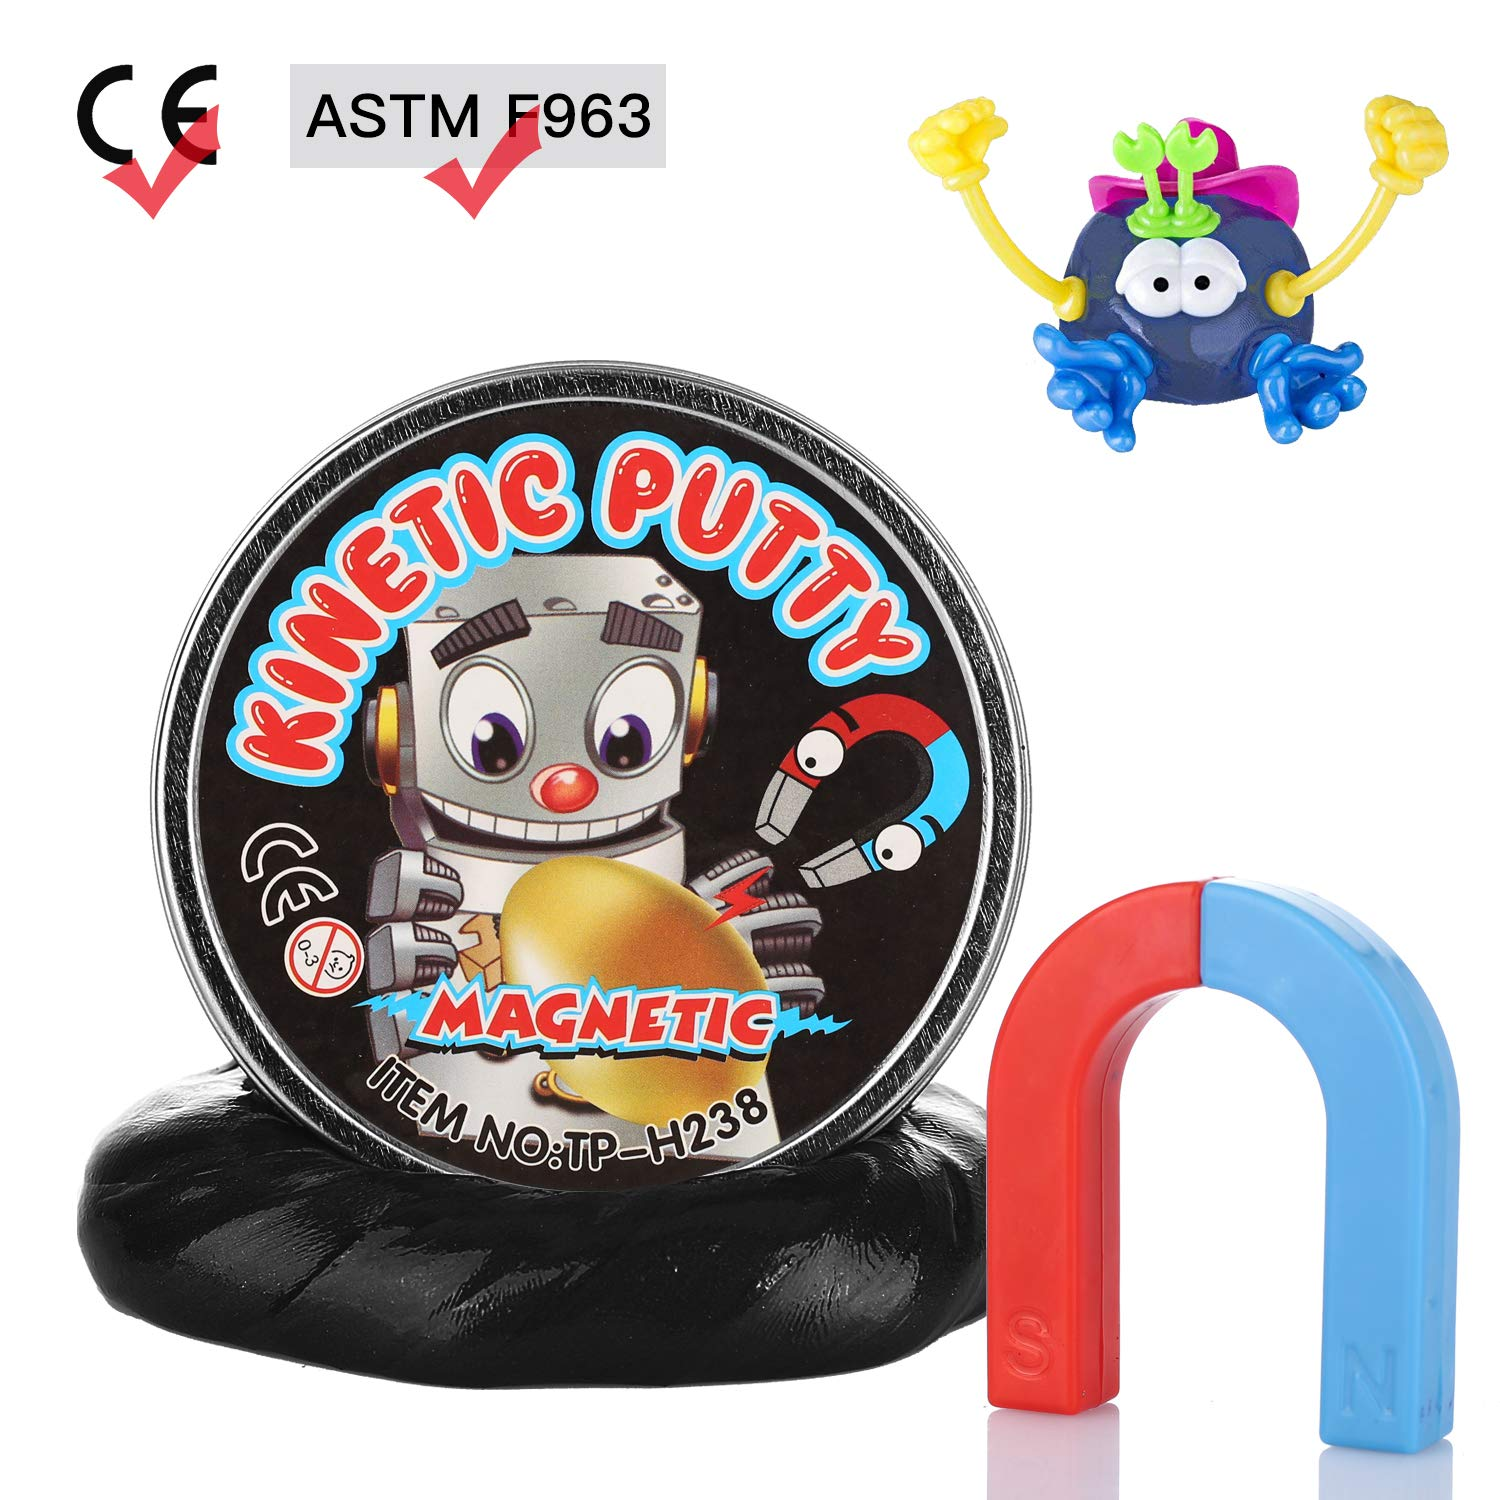 Dmhirmg Acxopt Colourful Slime Bouncing Putty Creative Thinking Diy